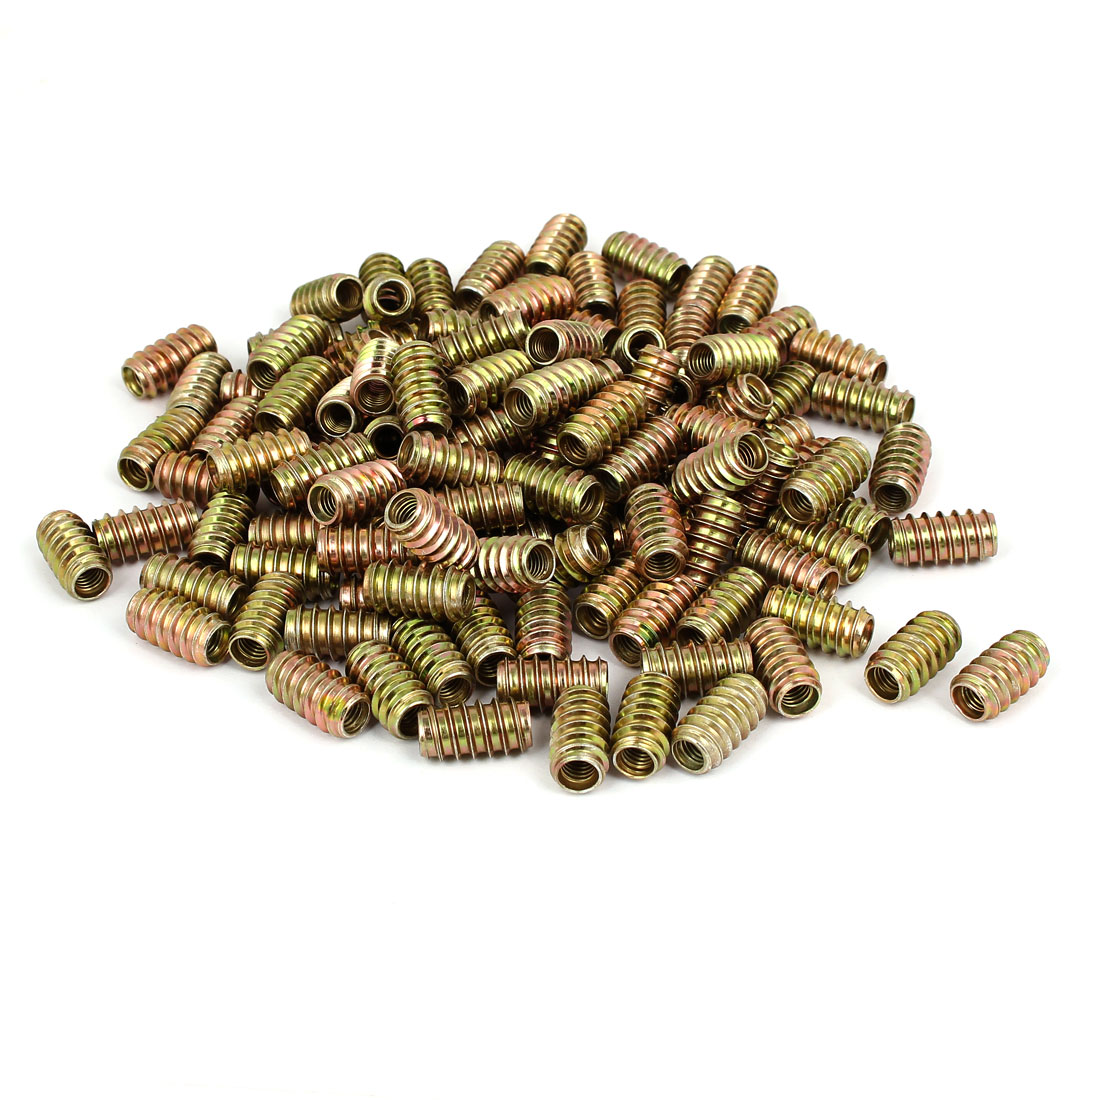 6mm x 20mm Yellow Zinc Plated E-Nut Wood Furniture Insert Nut 200PCS